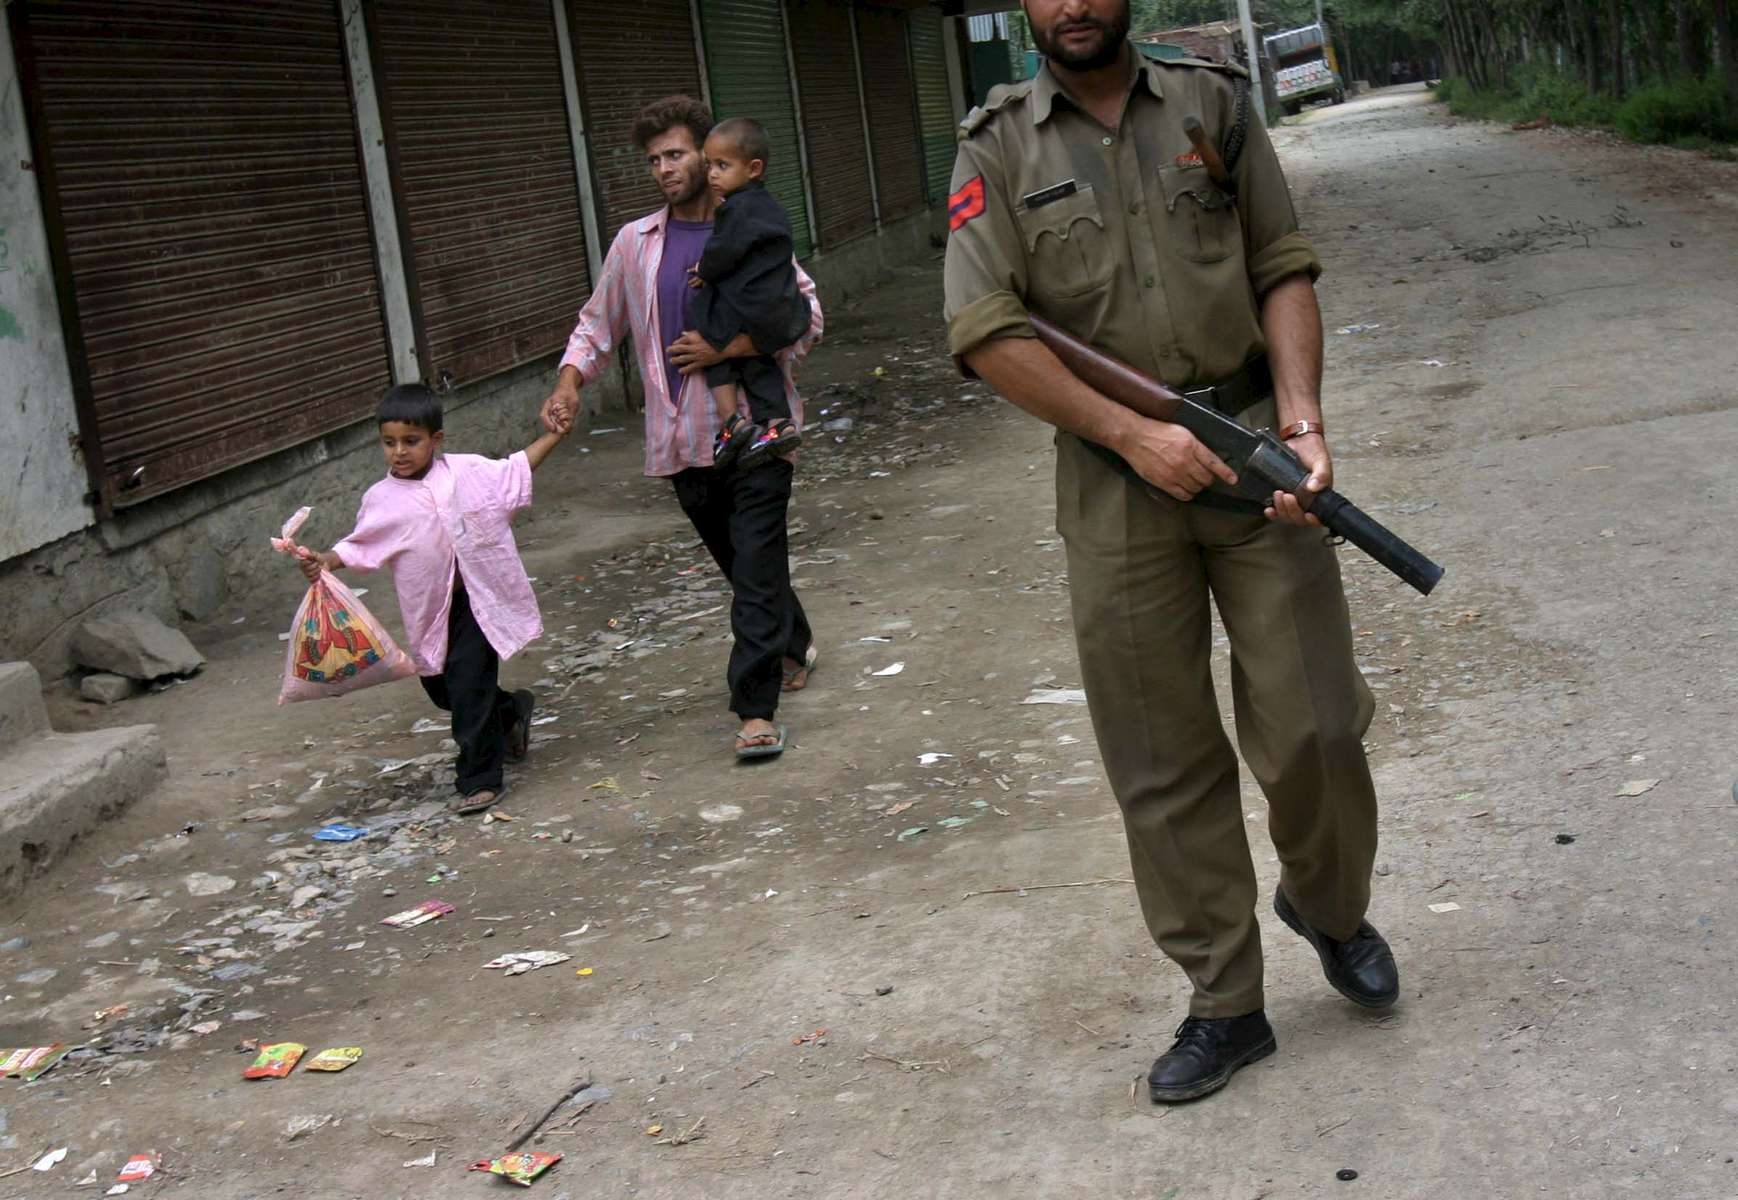 A Kashmiri family skirts by an Indian military personnel who was on patrol during the aftermath of a protest. Scores of villagers outside of Srinagar were protesting the killing of a militant.